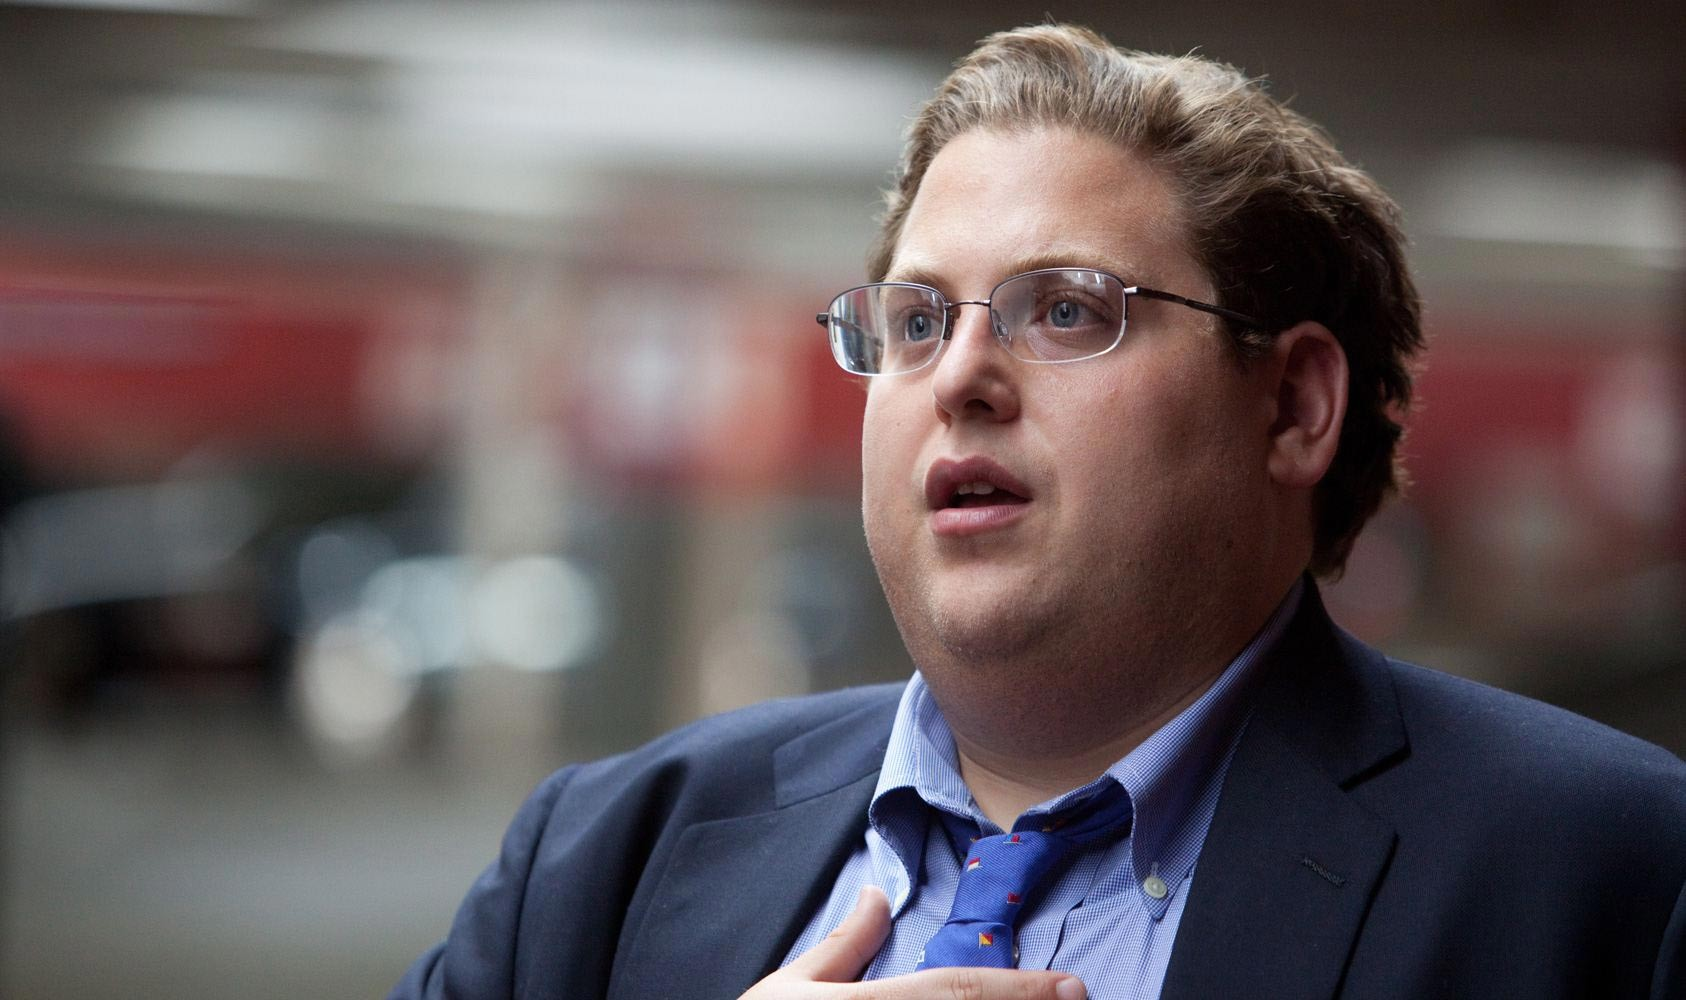 Jonah Hill stars as Peter Brand in Columbia Pictures' Moneyball (2011)